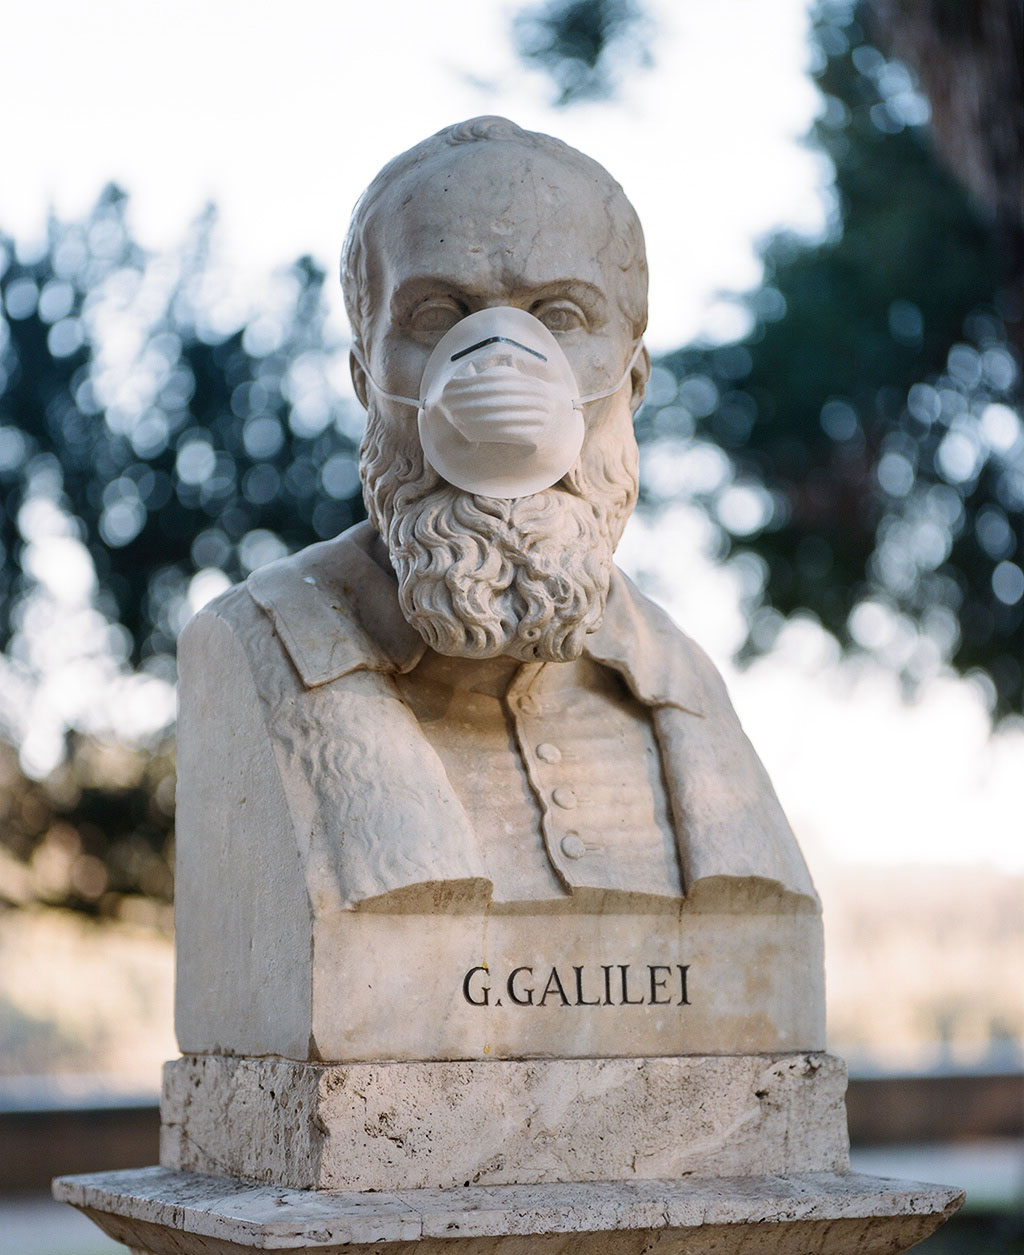 Bust of physicist and astronomer Galileo Galilei (1564-1642) at Villa Borghese gardens, Rome. Photo © Federico Pestilli.